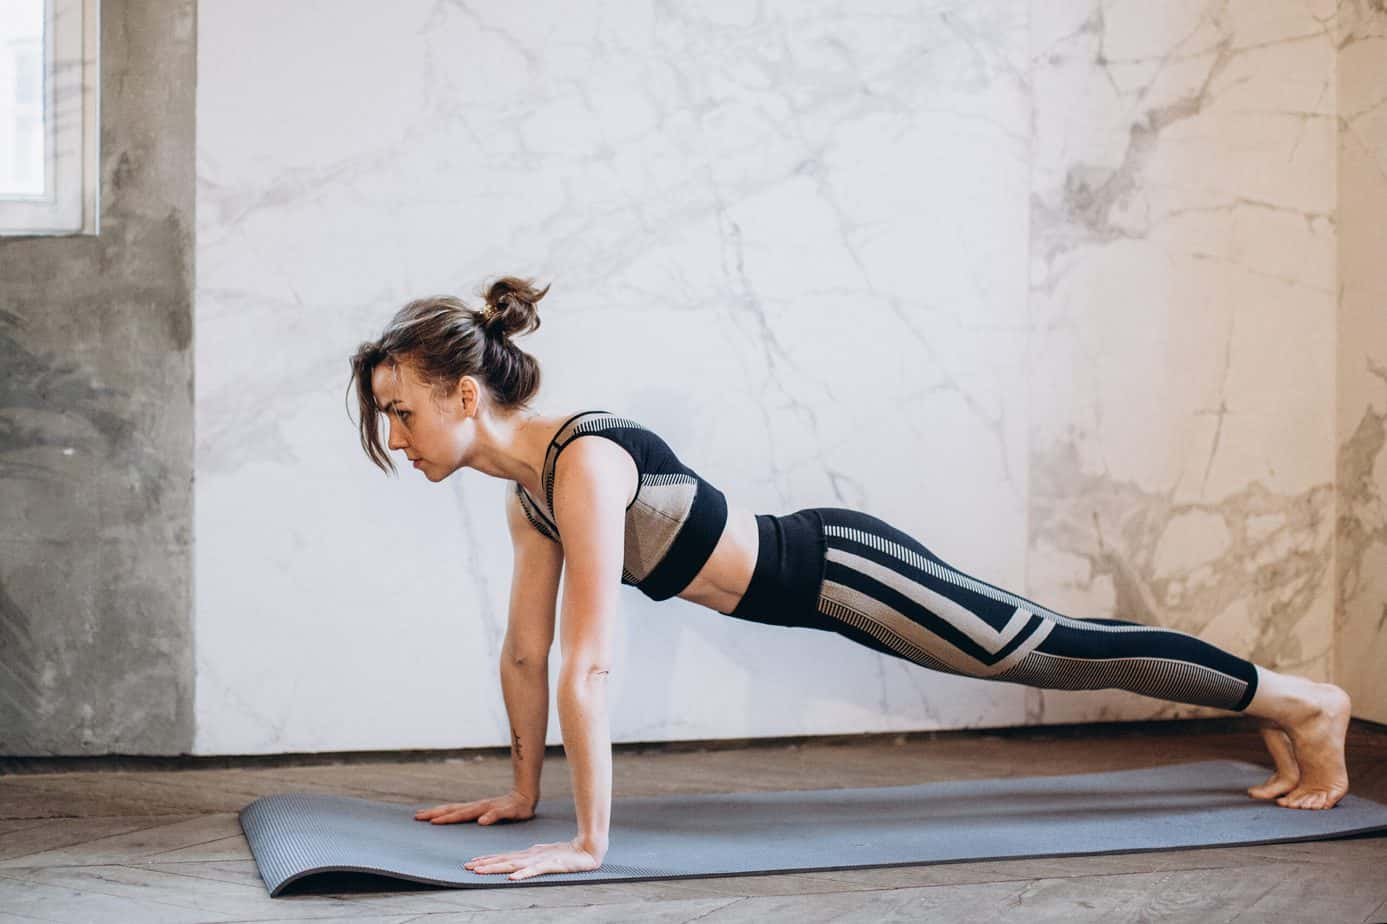 a woman doing a basic plank wearing a see though black leggings